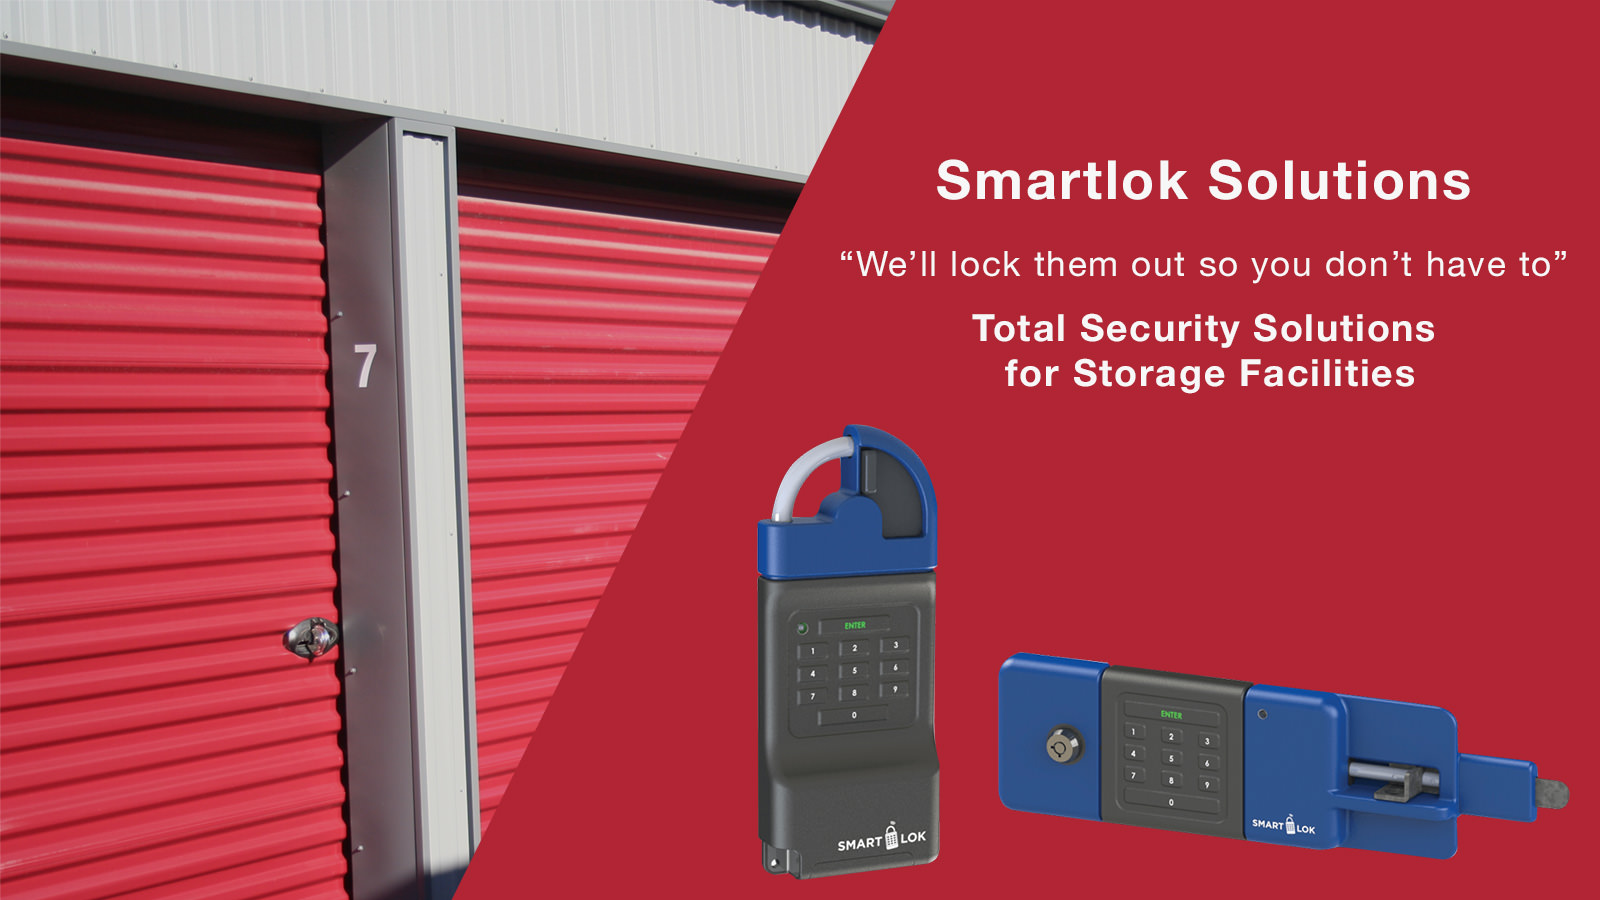 Smartlok Solutions. We'll lock them out so you don't have to.